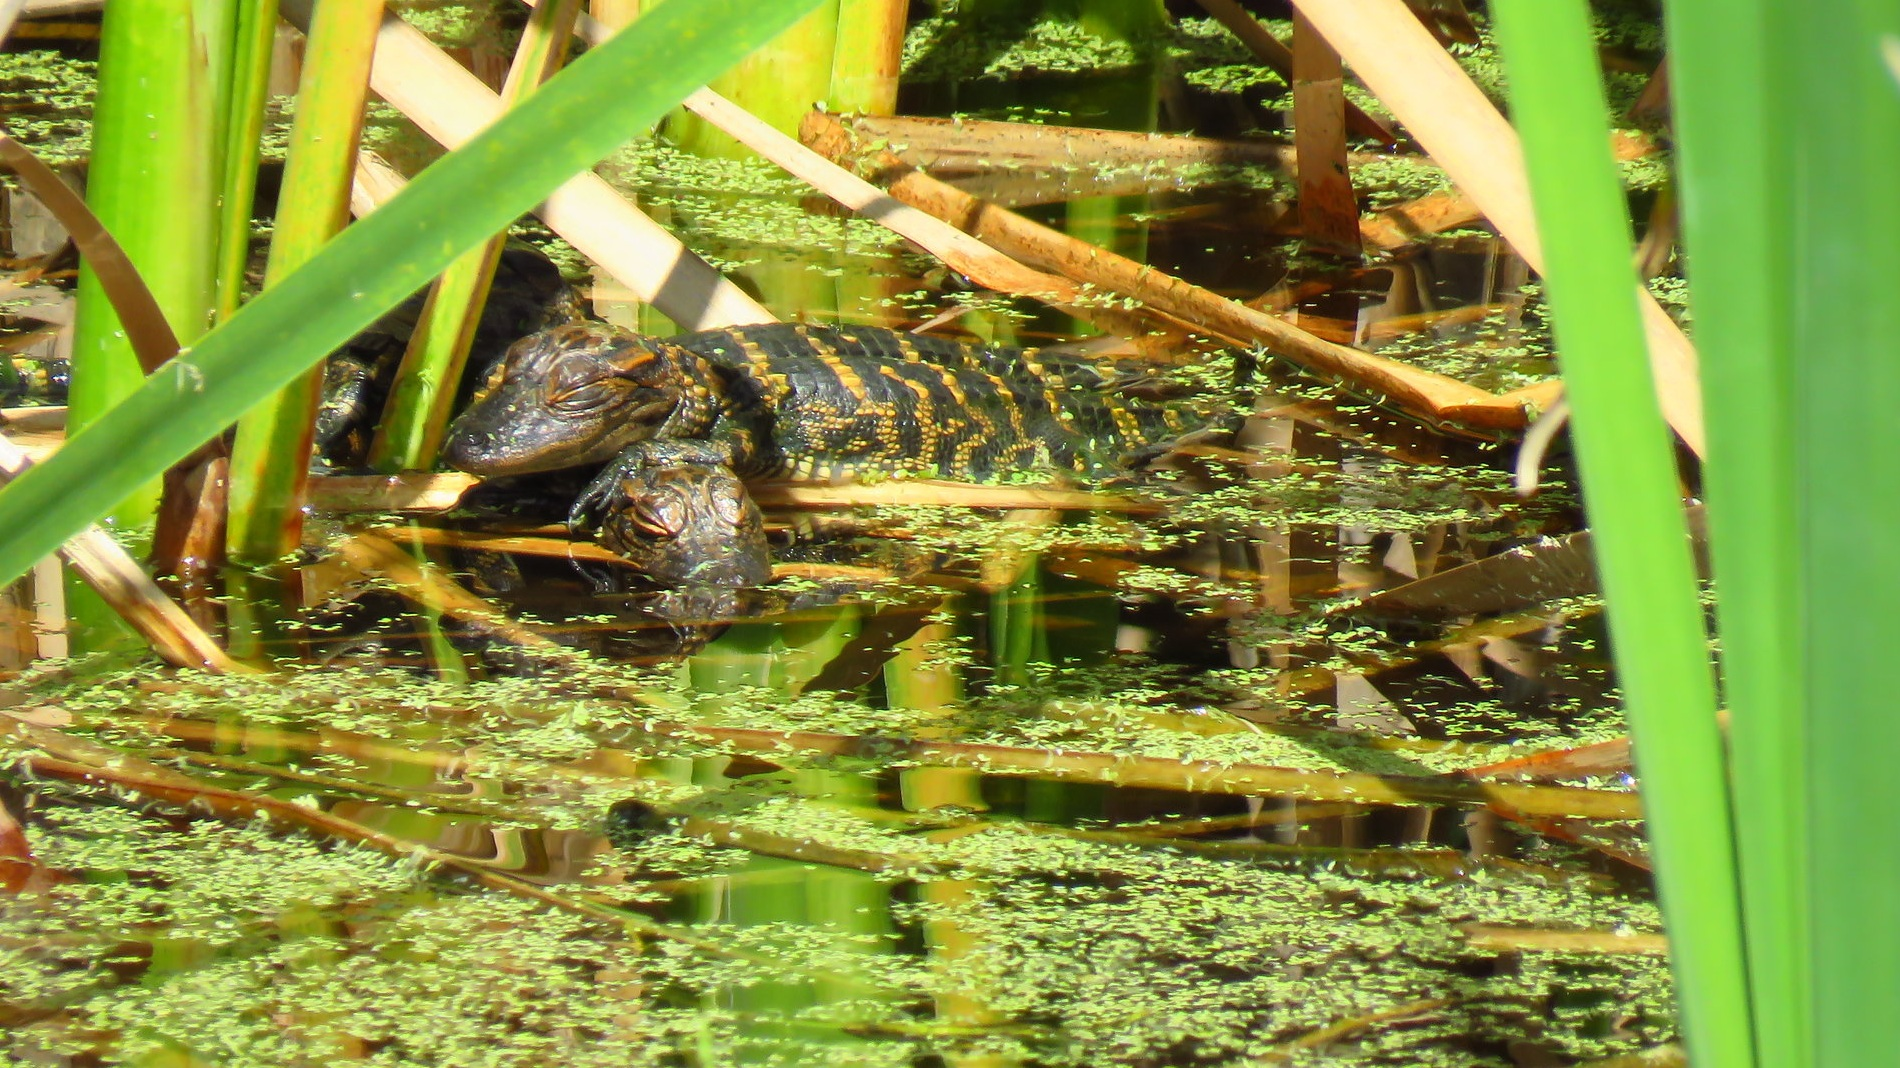 Recently hatched alligators at Viera Wetland, Viera, FL